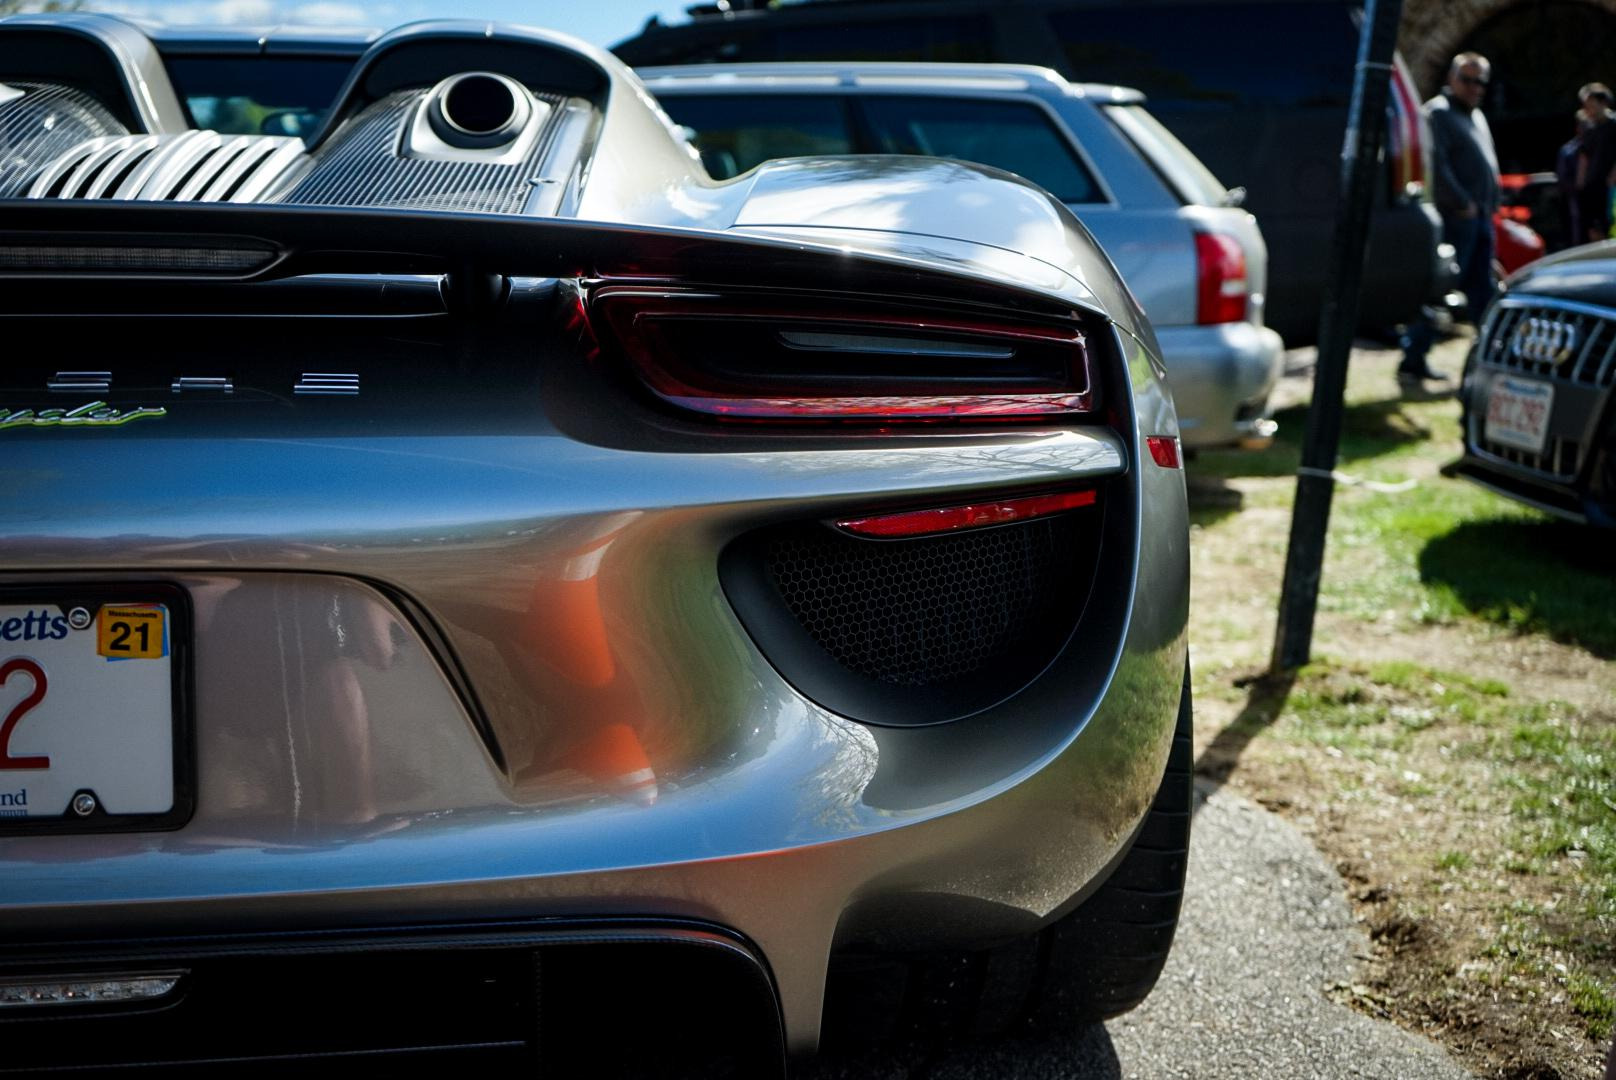 918s are dope